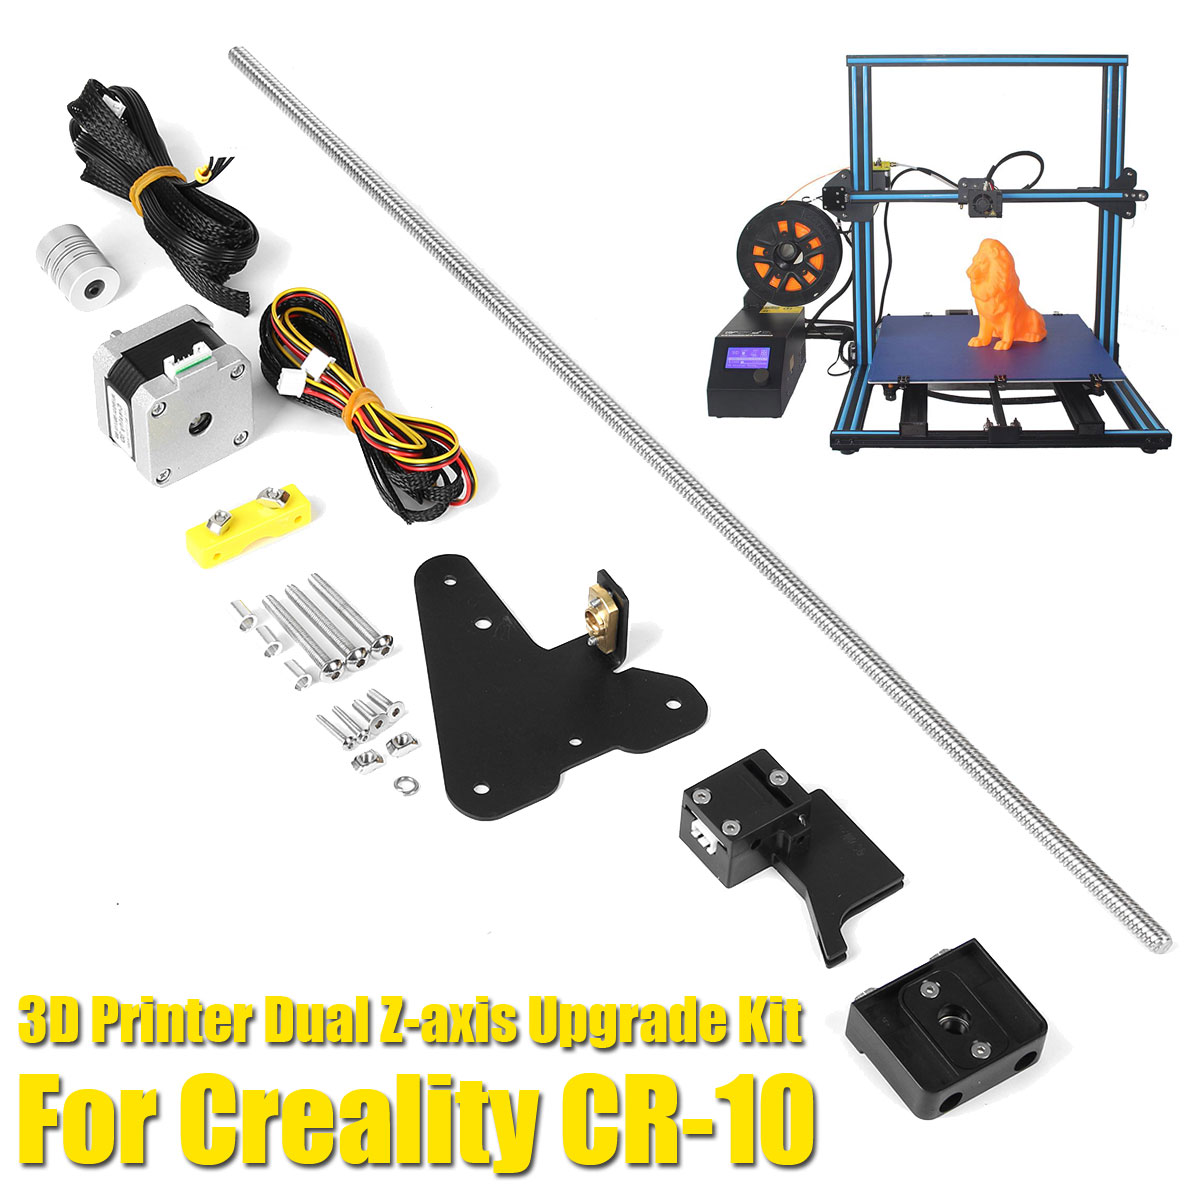 S SKYEE 3D Printer Dual Z axis Upgrade Kit + Filament Sensor Kits For Creality CR 10 3D Printer Parts-in 3D Printer Parts & Accessories from Computer & Office    2